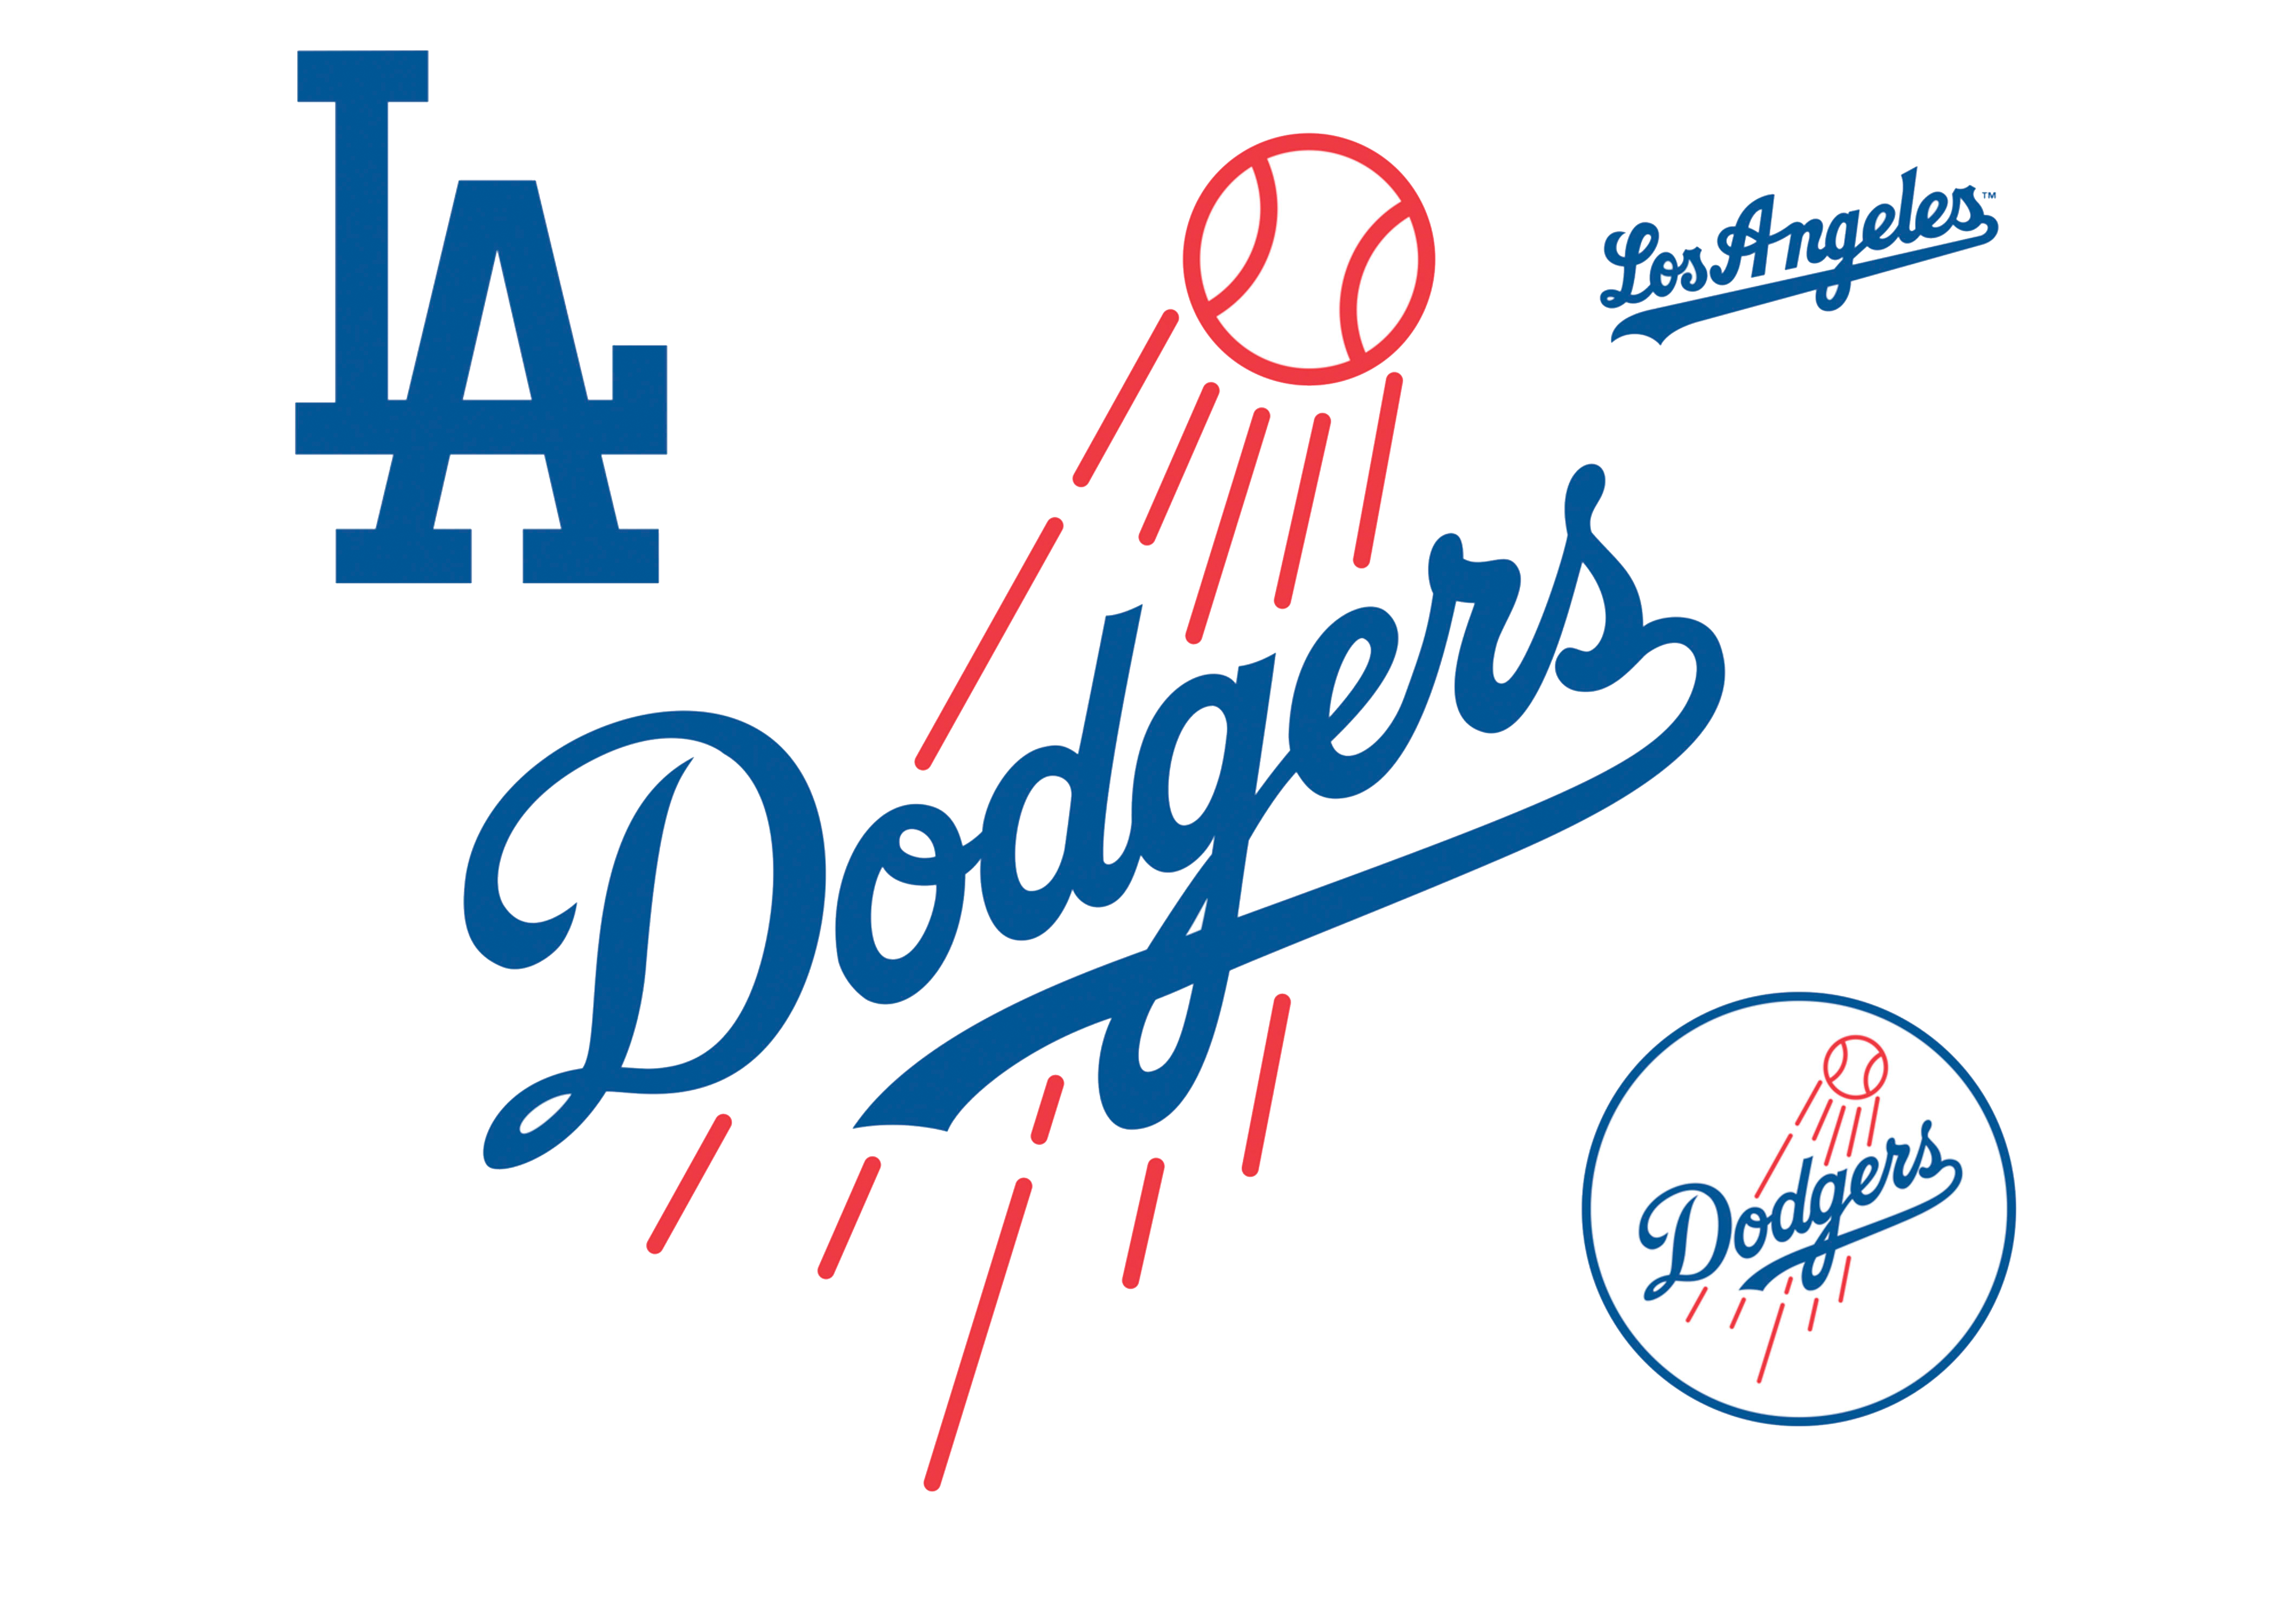 All logos png image. Dodgers vector svg free download